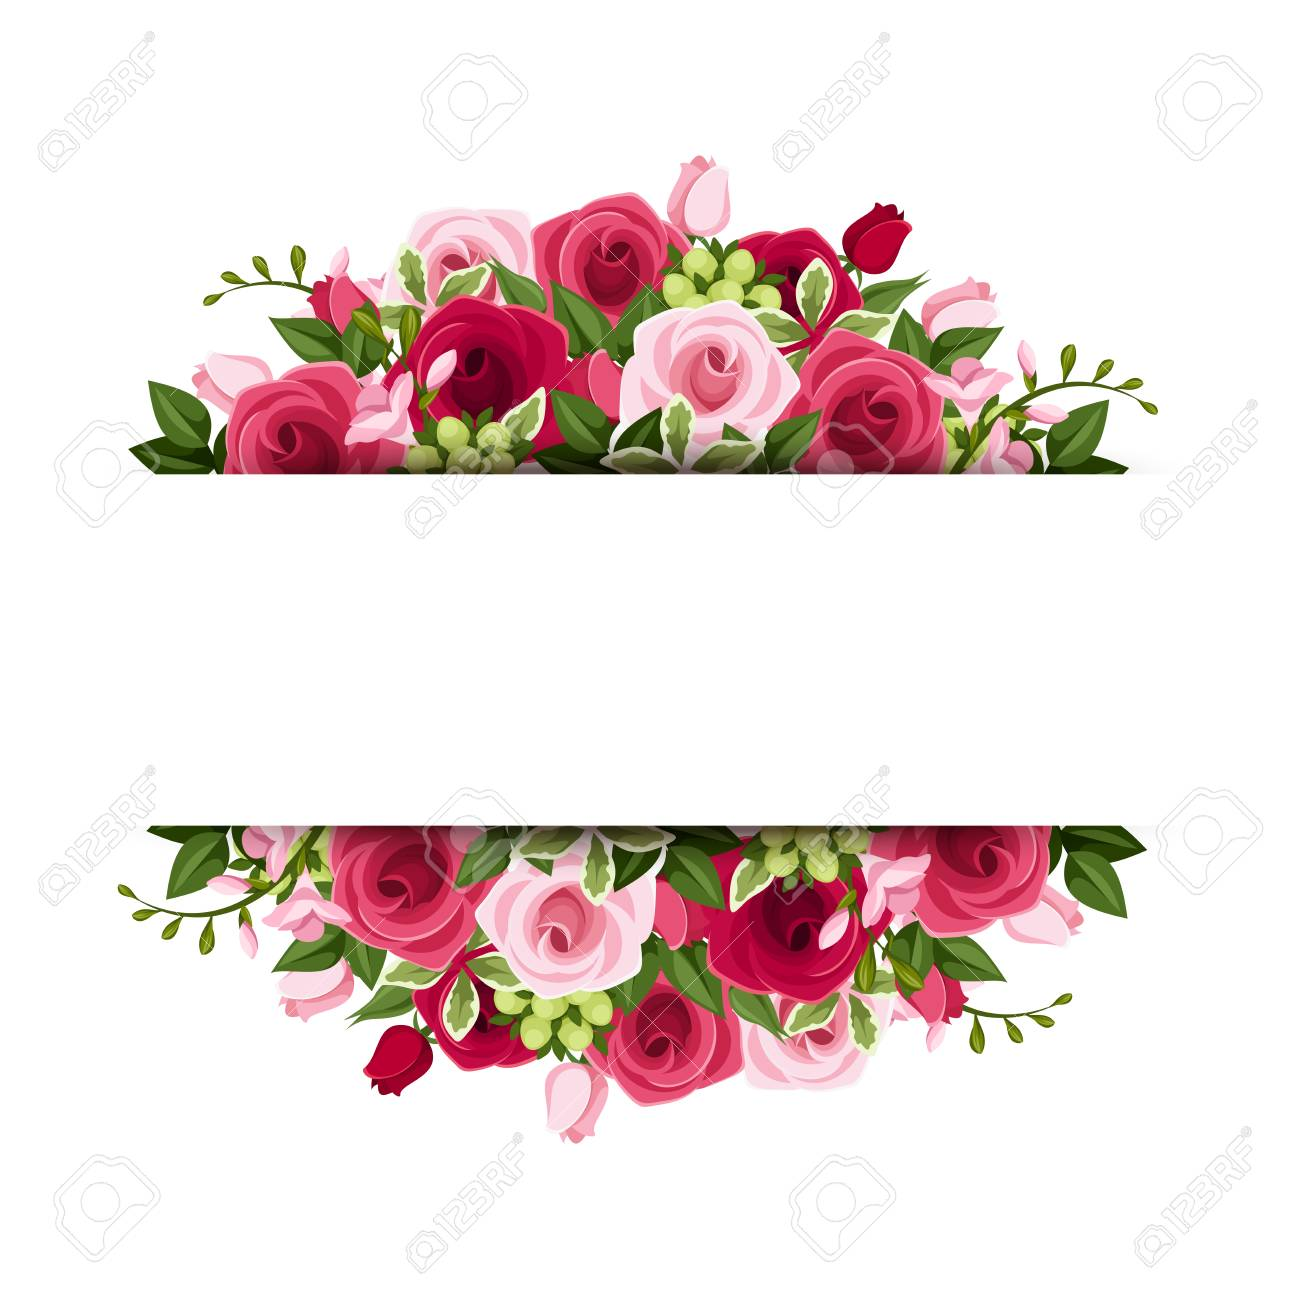 Vector banner with red and pink roses and freesia flowers..